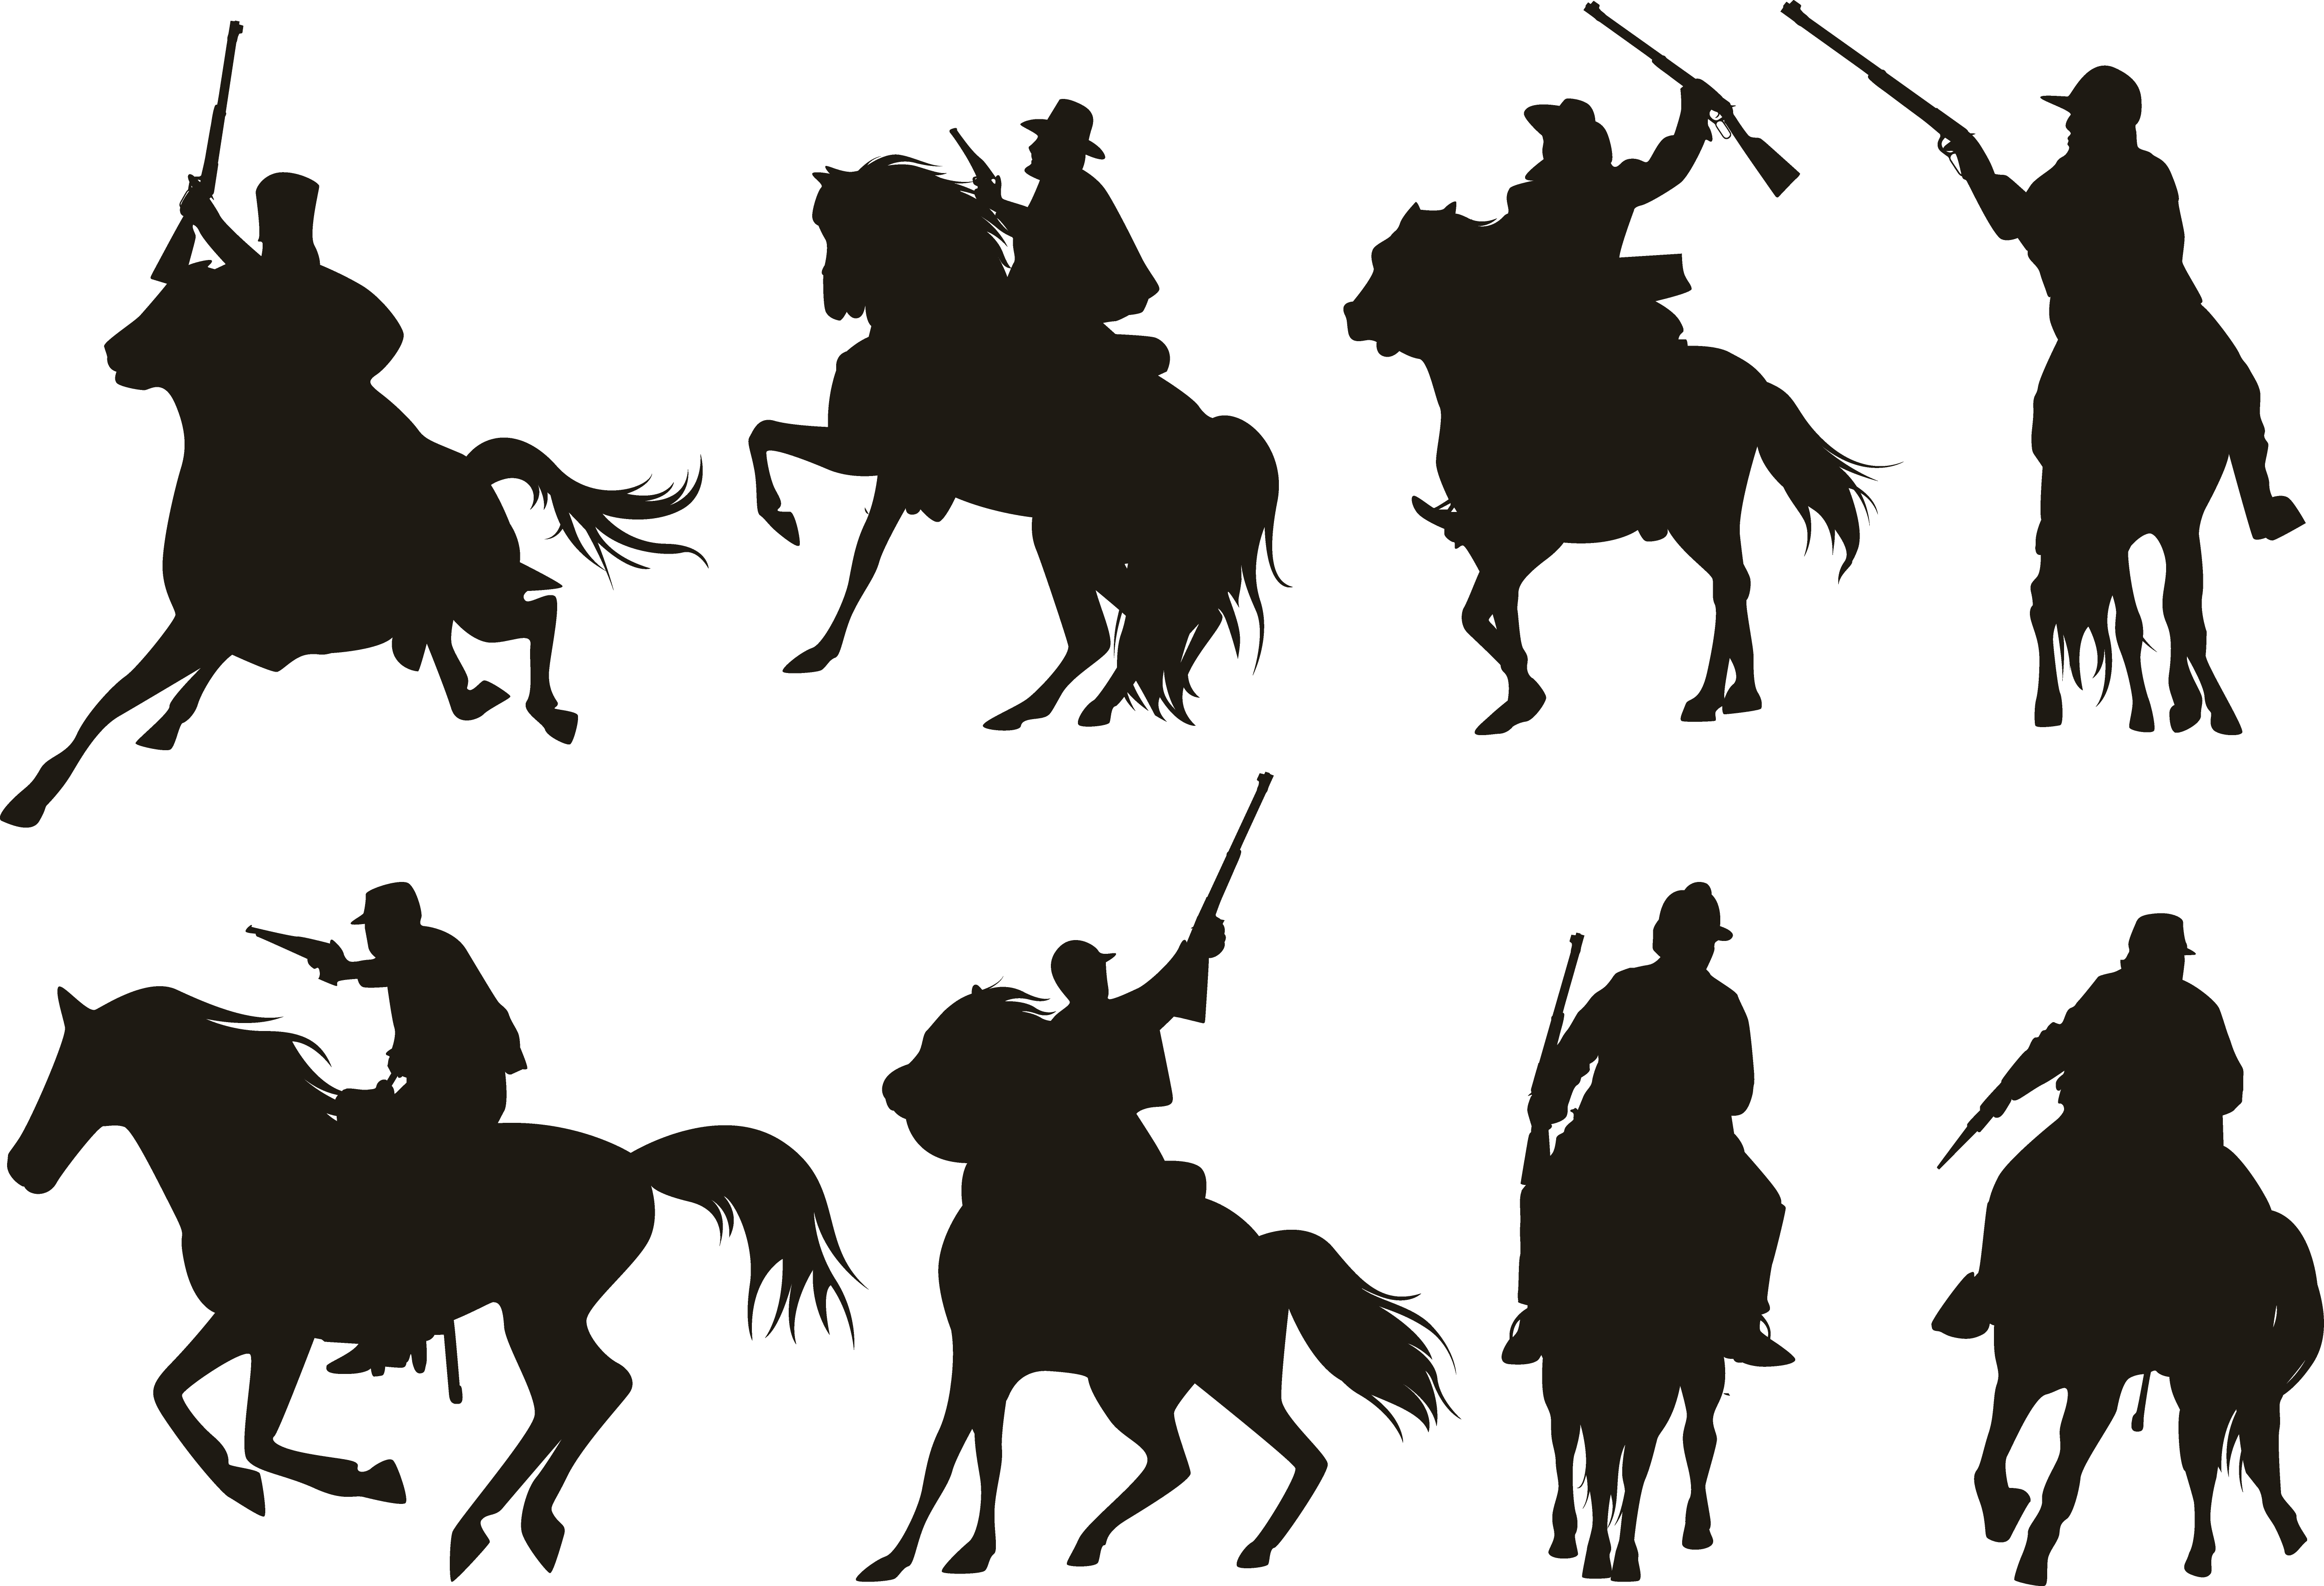 Knight silhouette png. Horse cavalry black transprent